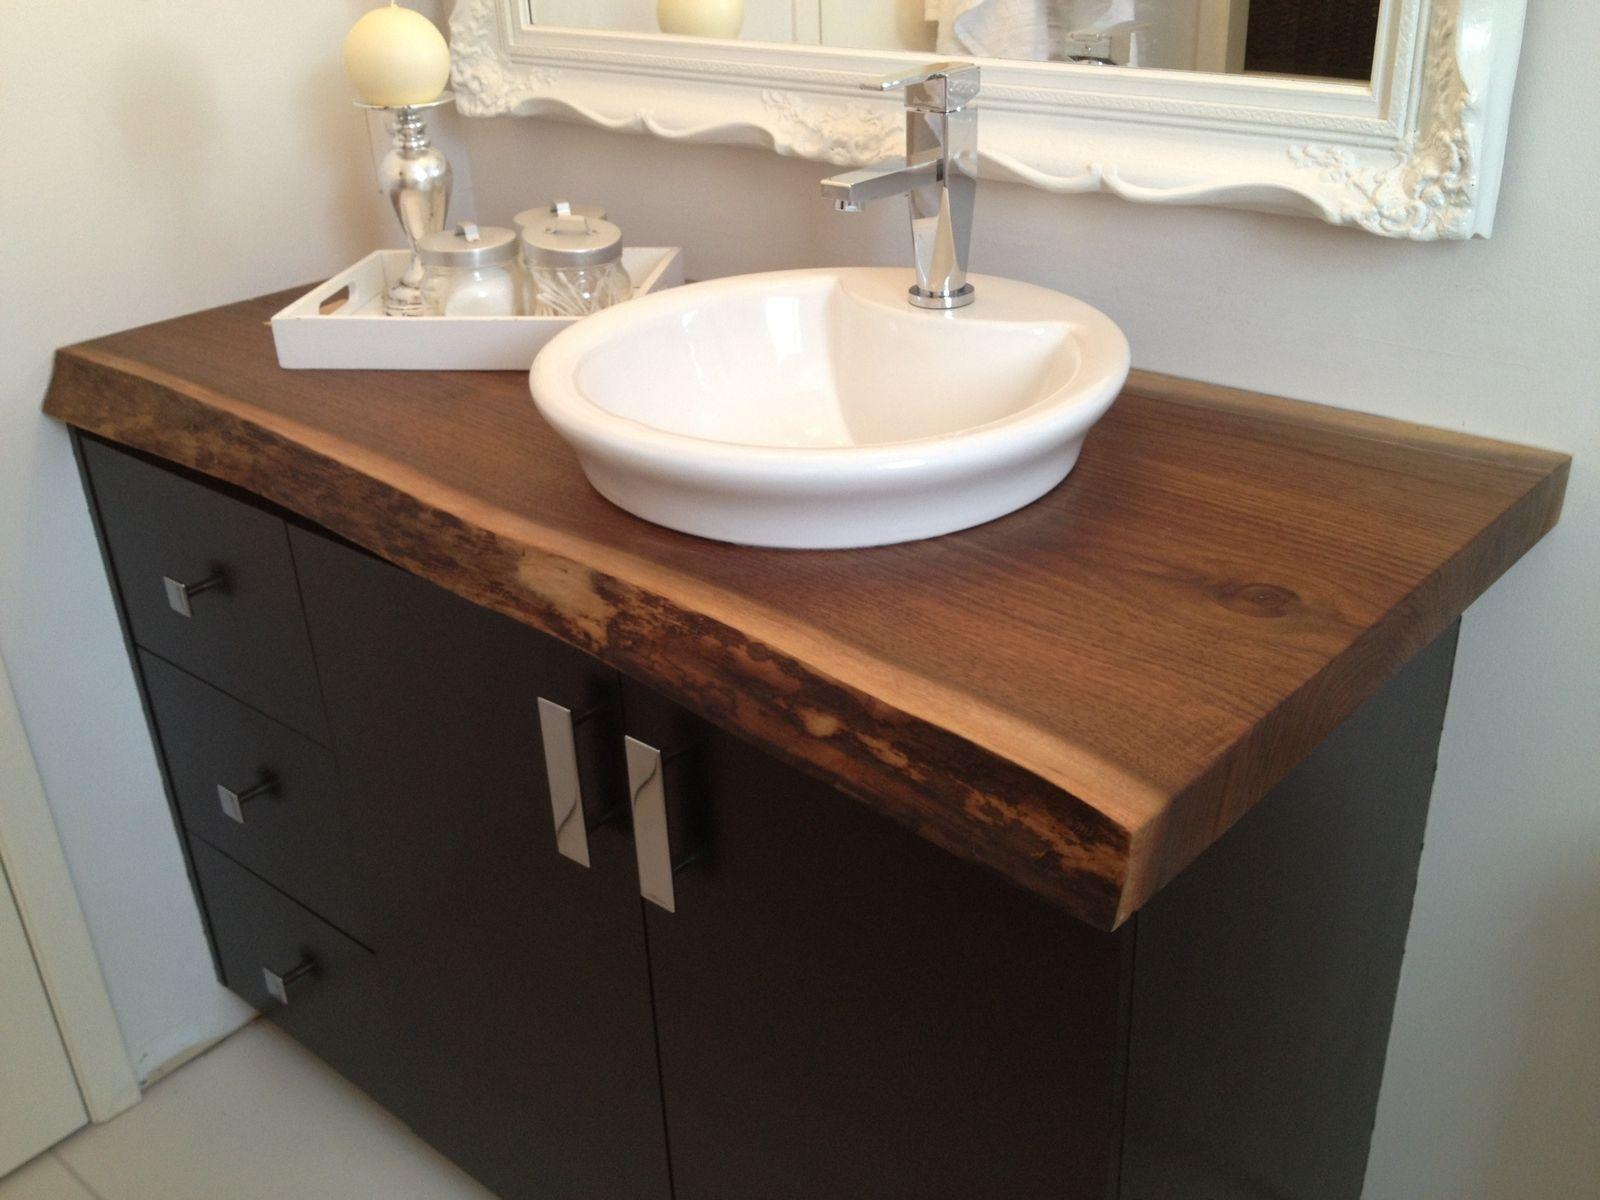 Live Edge Black Walnut Bathroom Countertop This Would Be Perfect For My Bedroom Sink Yes The